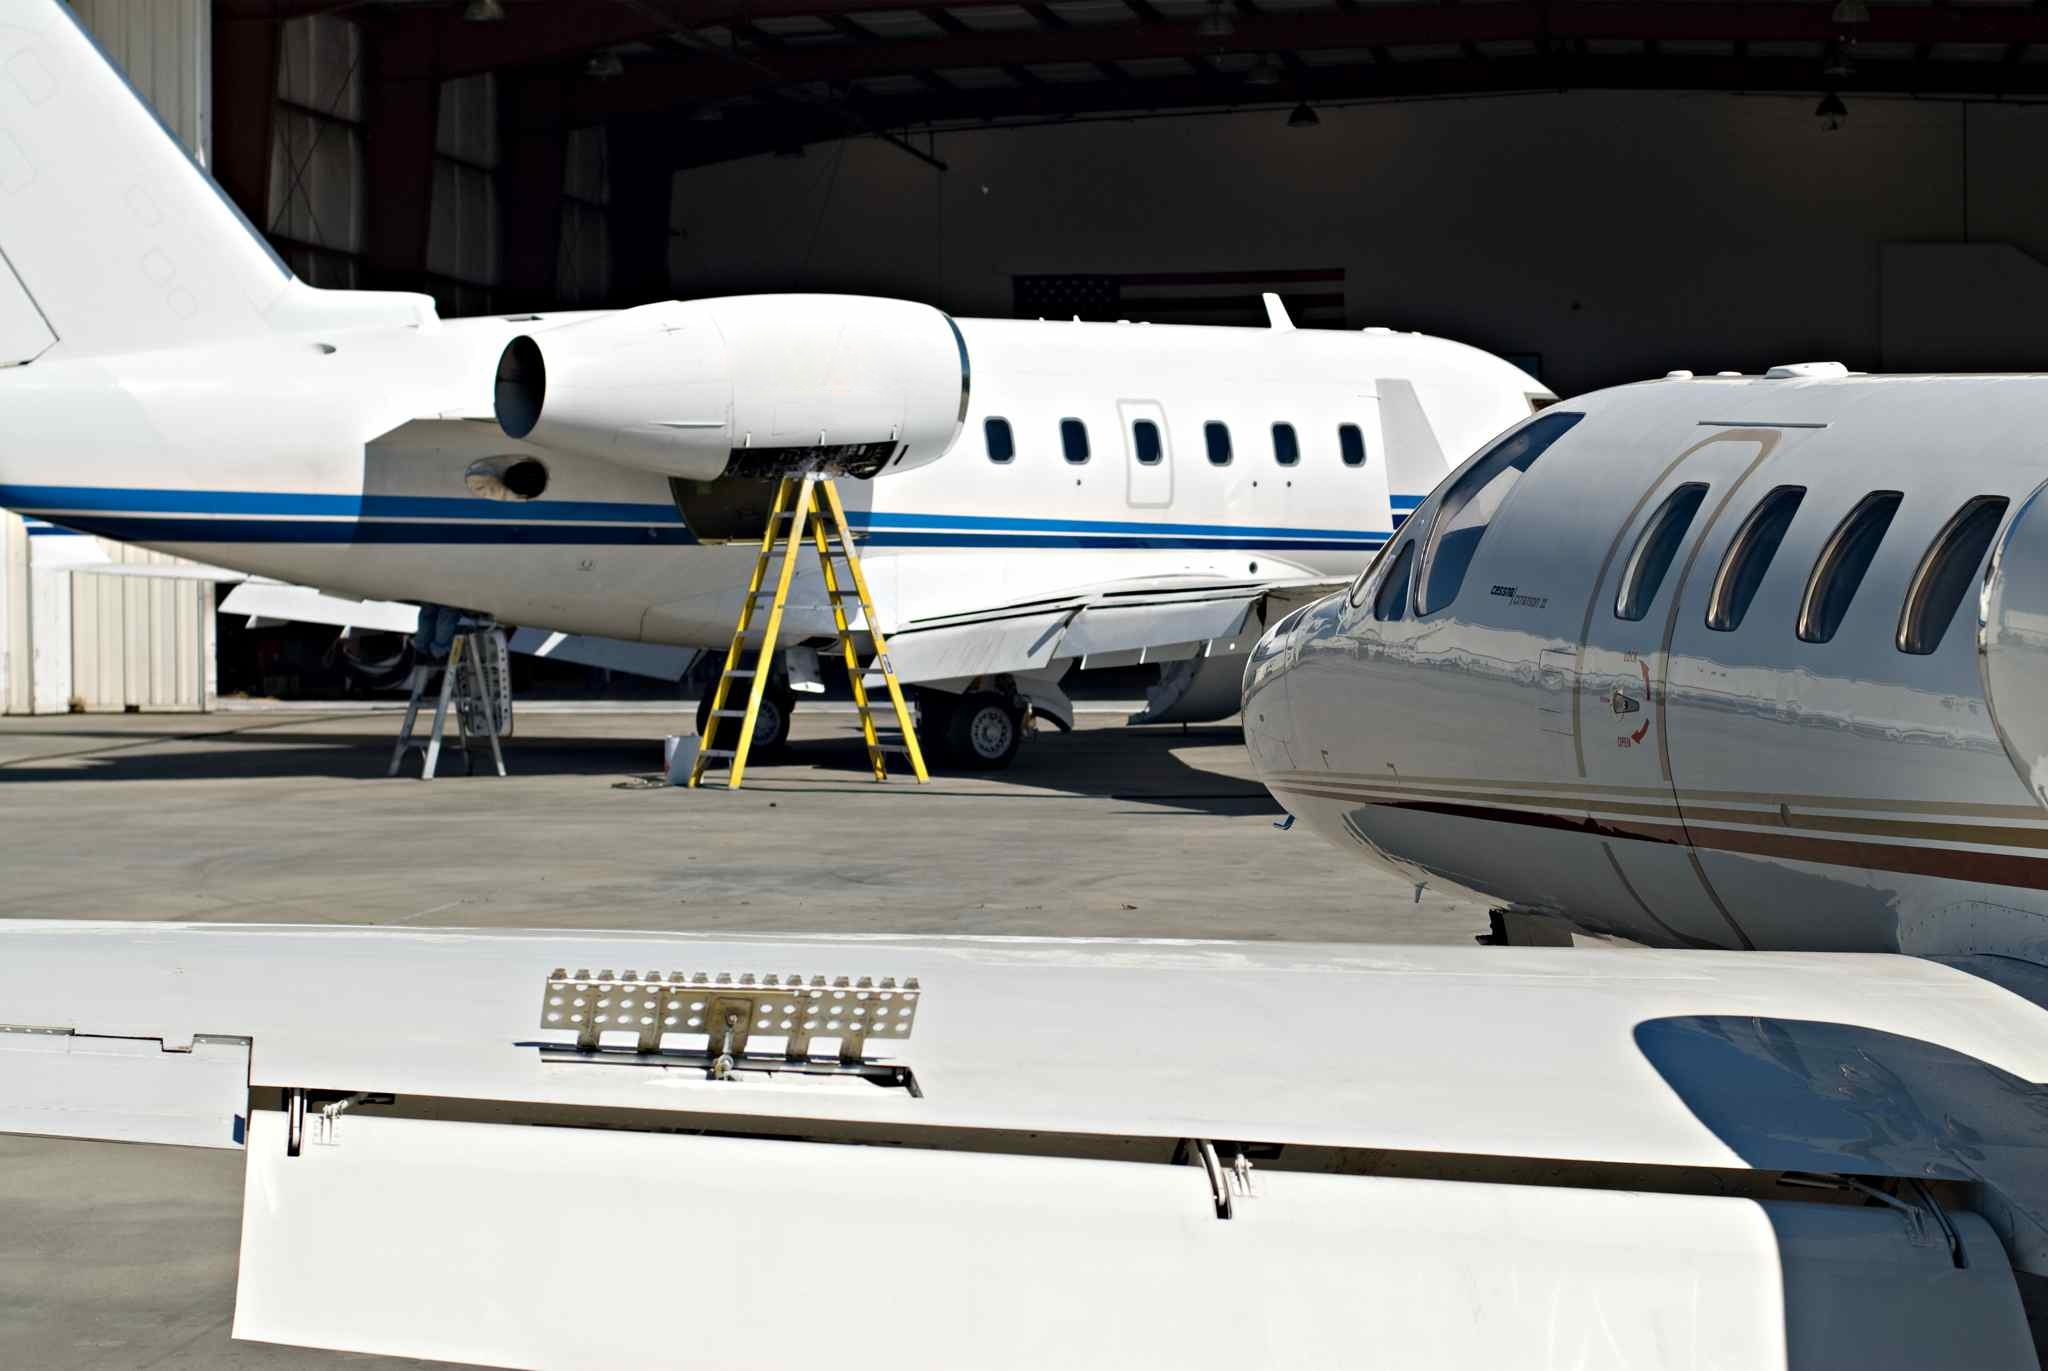 Two inspections occurring, one on the Citation II, the other on a Challenger 600.